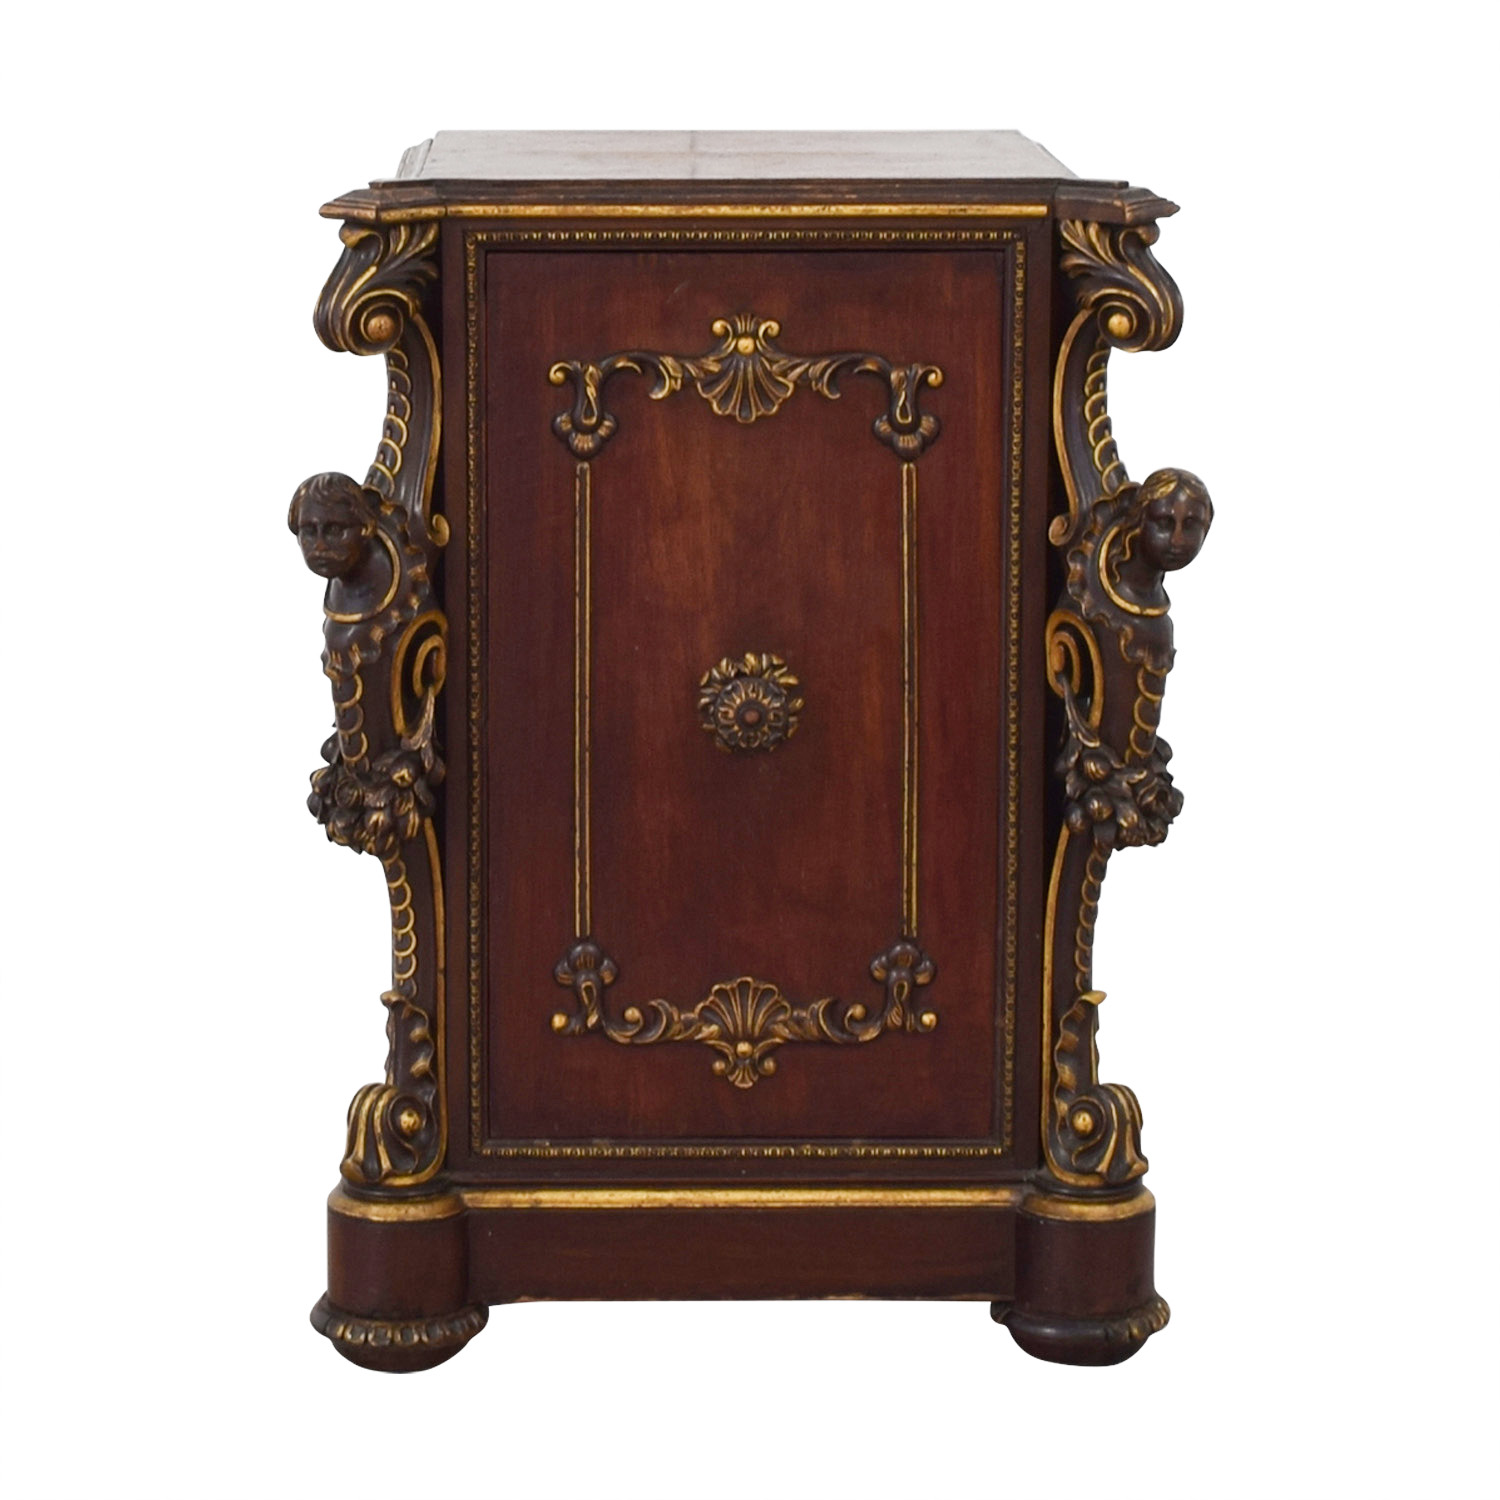 ABC Carpet & Home ABC Carpet & Home Antique Cabinet with Gothic Heads for sale